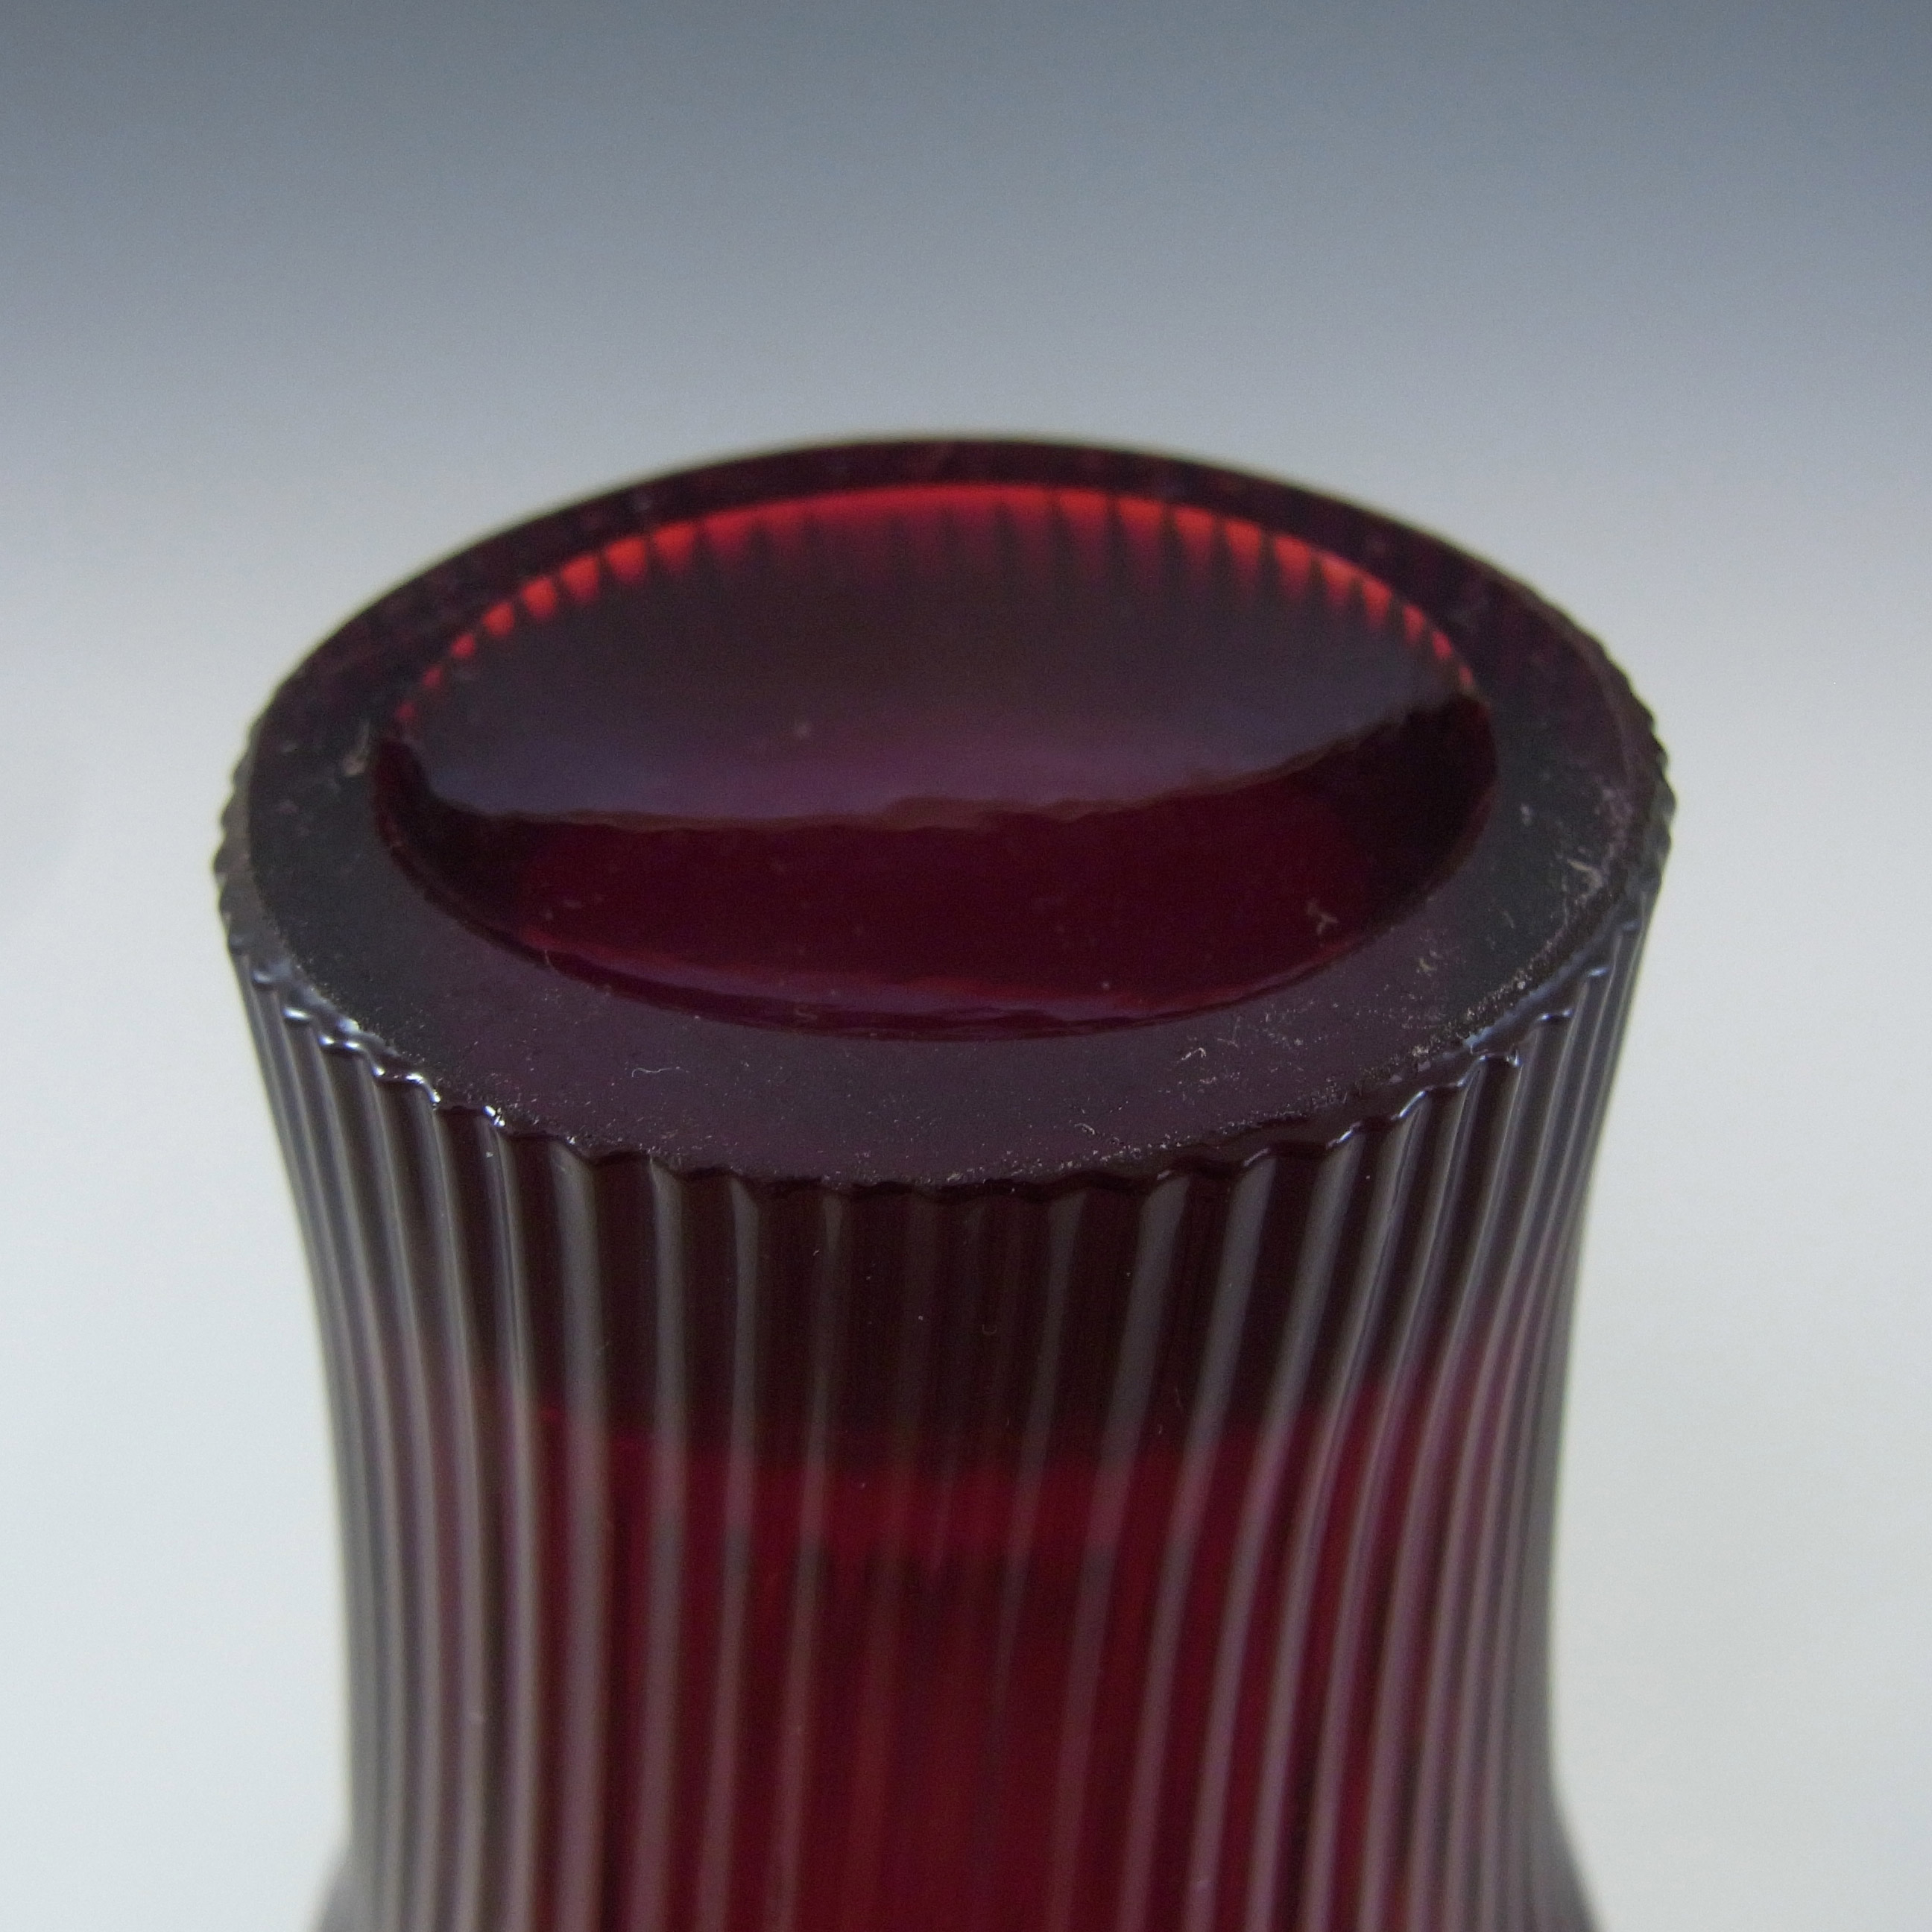 Gullaskruf Swedish Red Glass 'Reffla' Vase by Arthur Percy - Click Image to Close